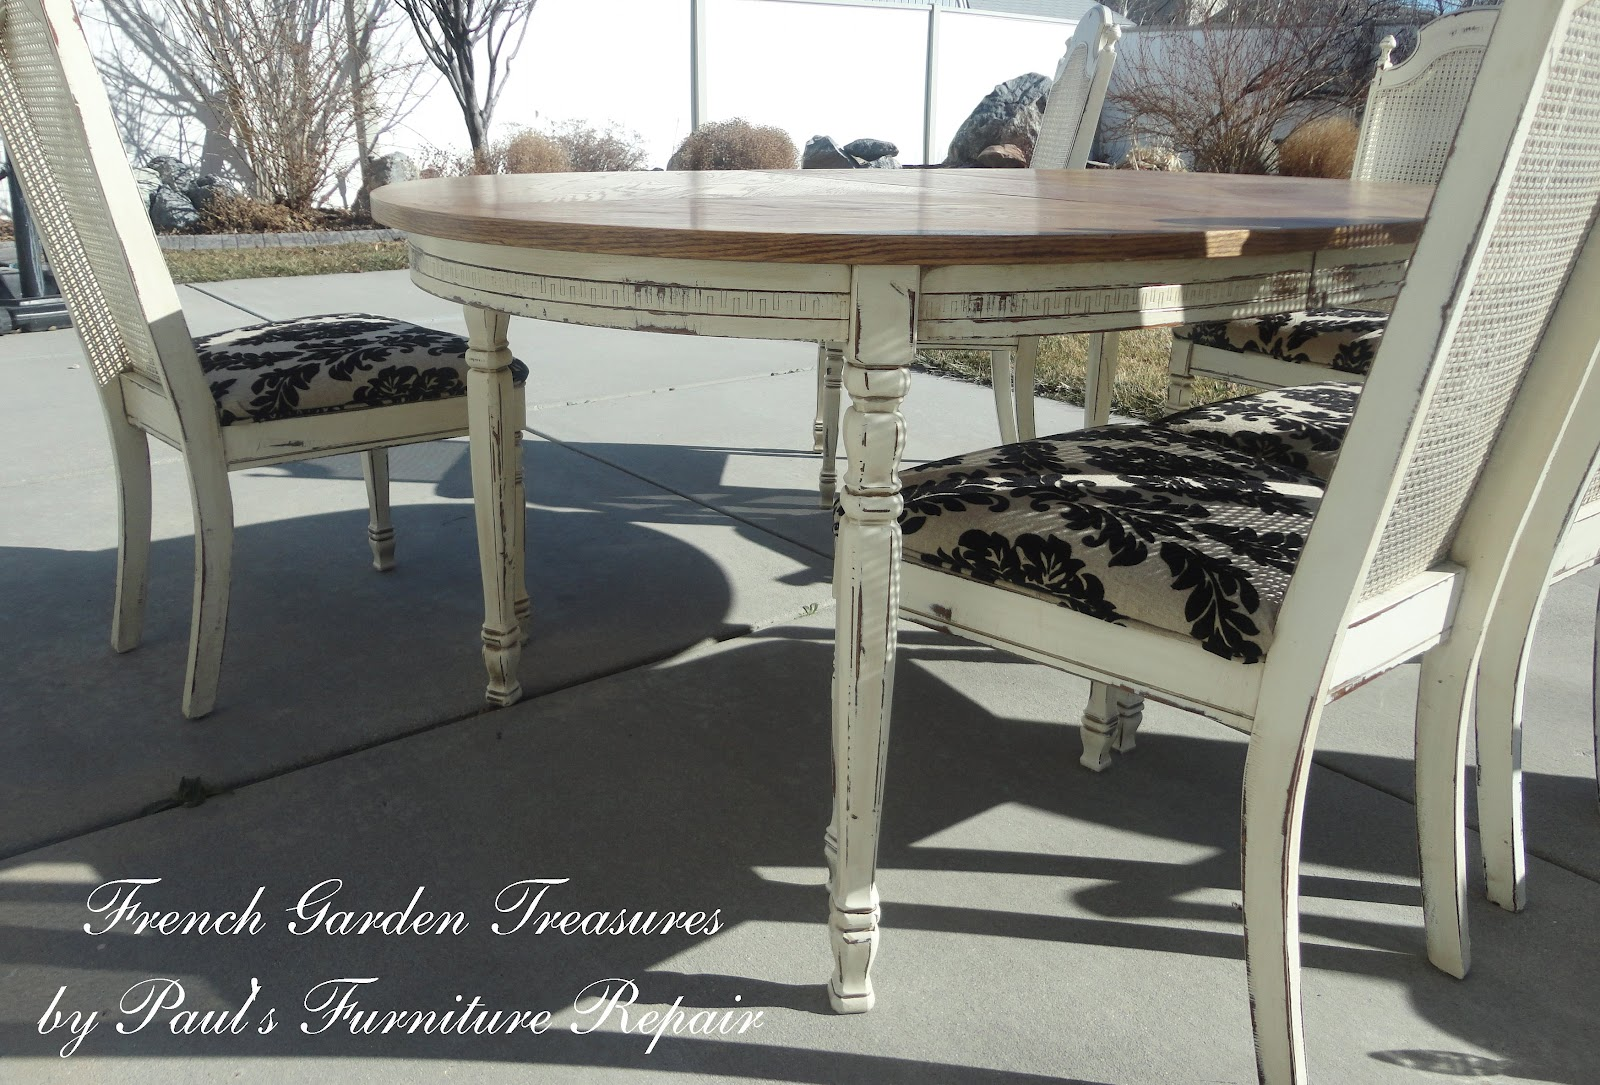 French Garden Treasures: Custom Refinish Dining Table and 5 Chairs